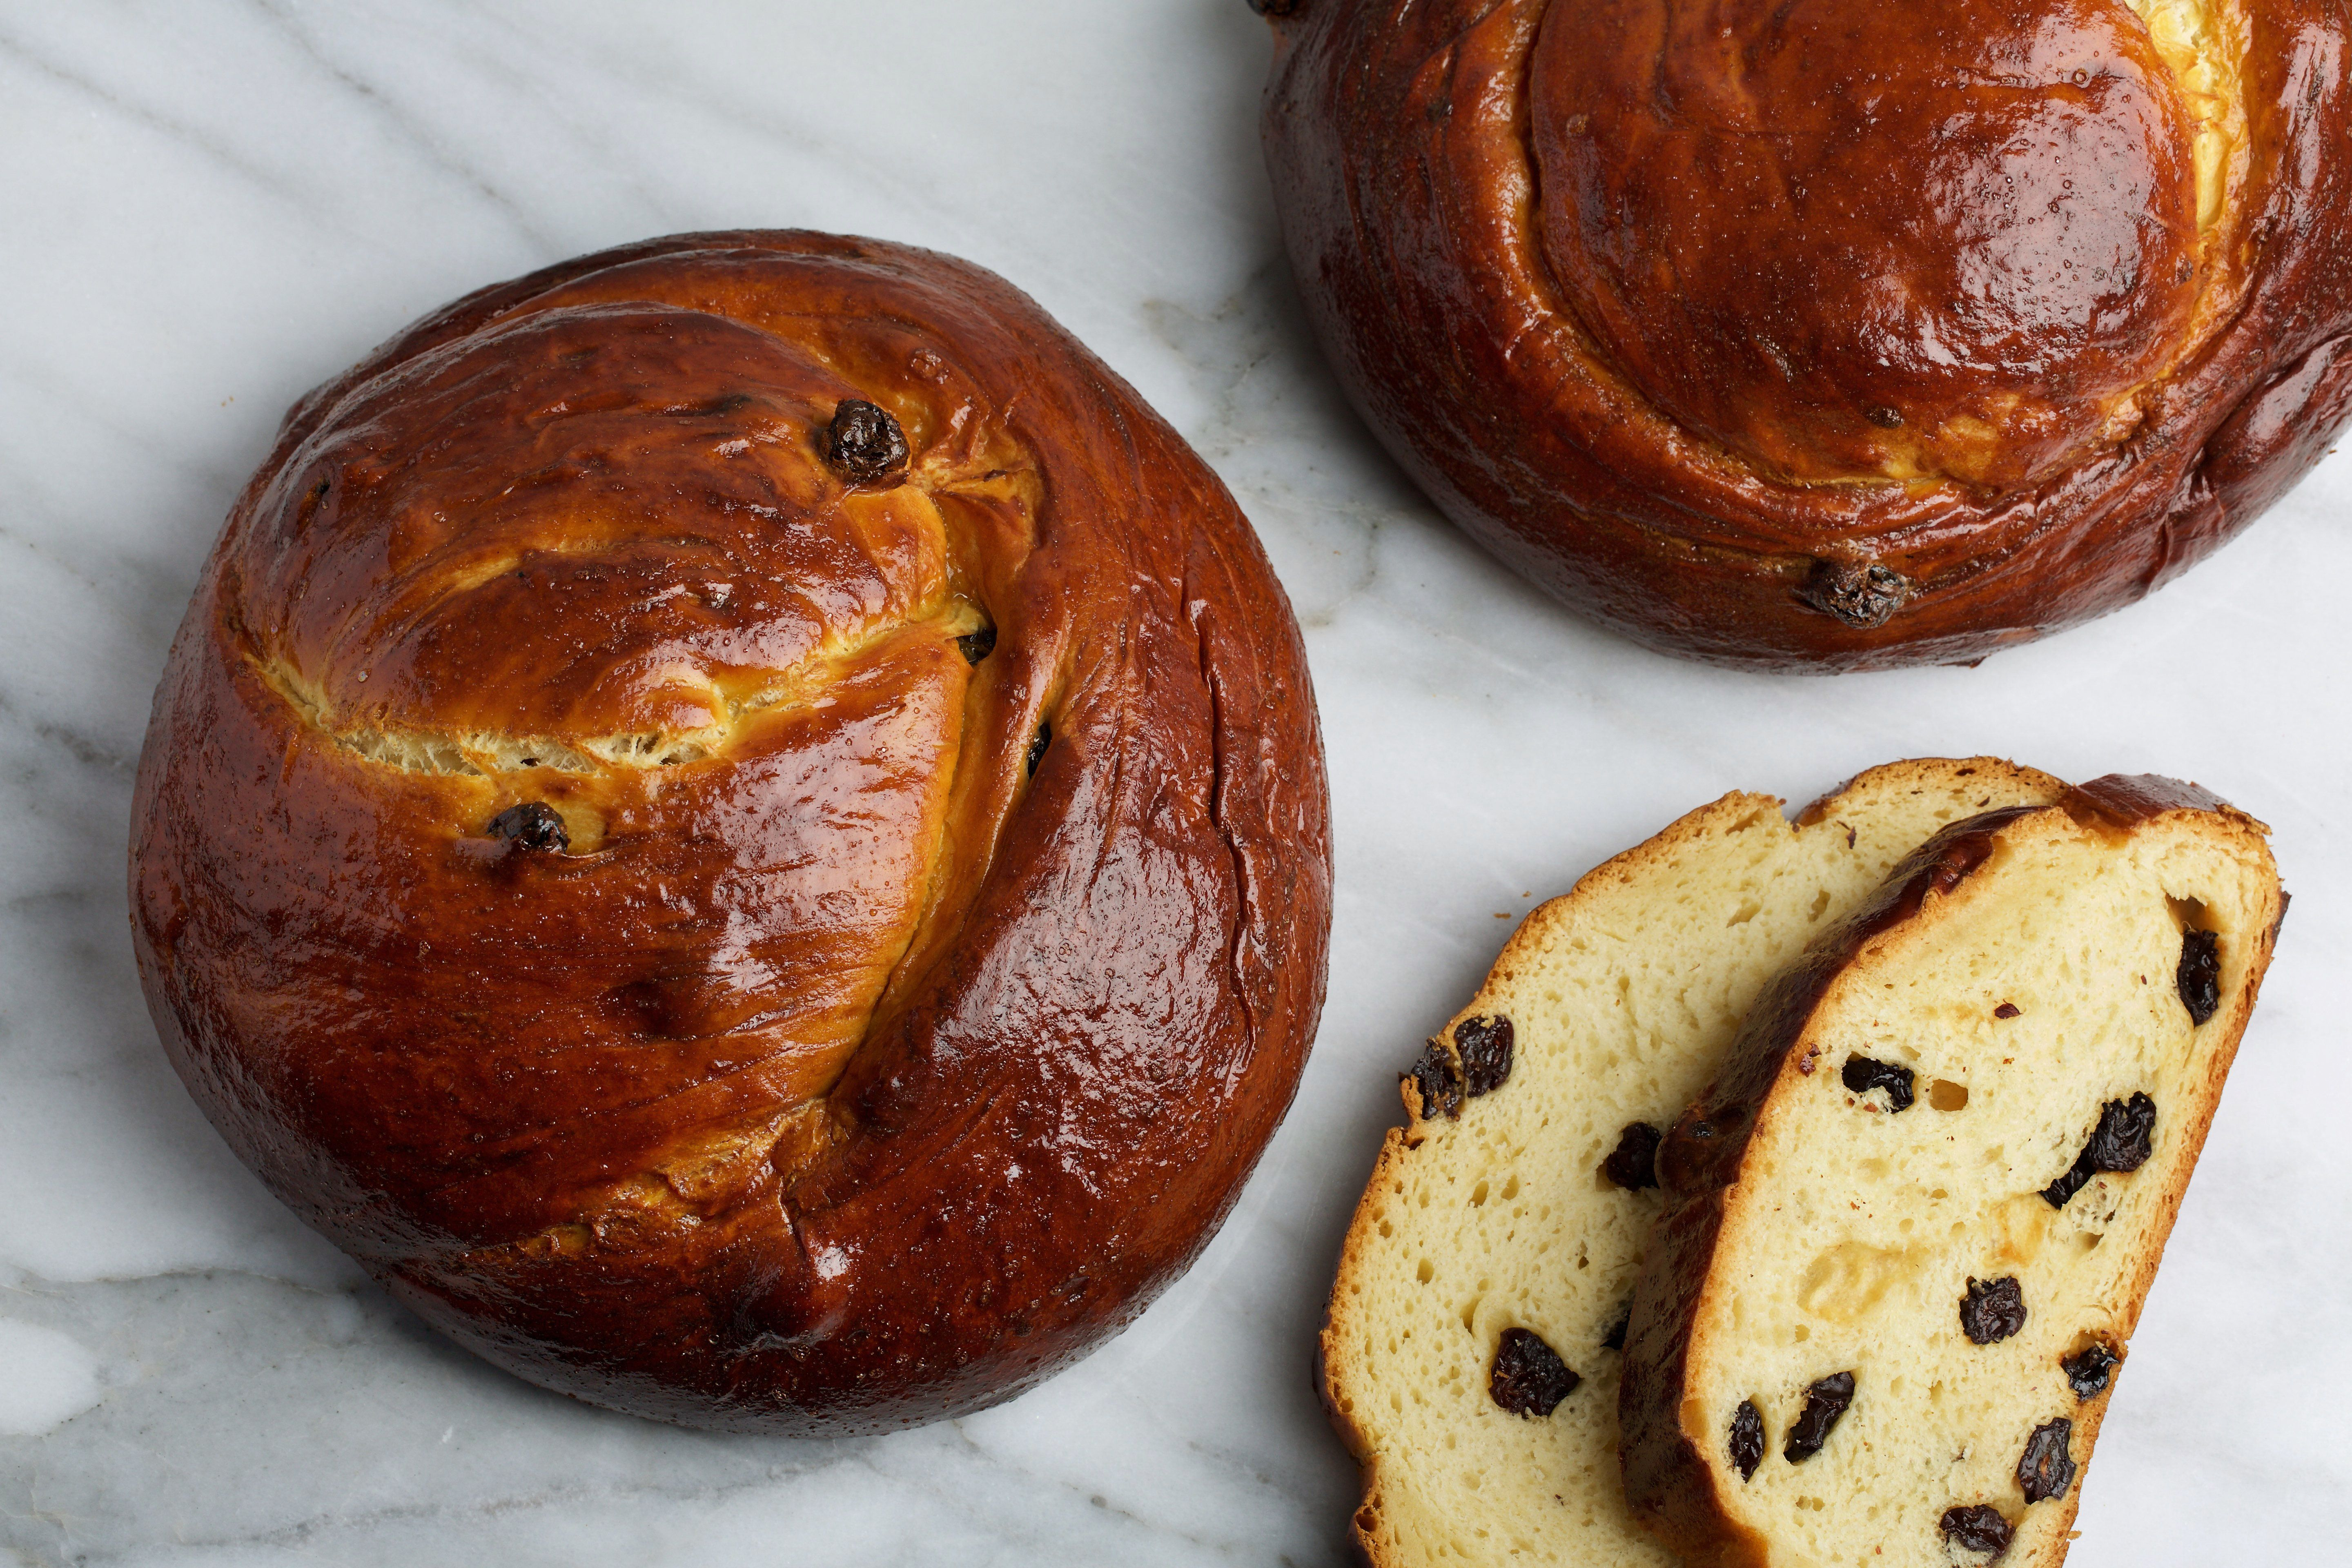 WASHINGTON, DC - Baked Rosh Hashanah goods from Alex Levin for pre-order: Raisin Challah photographed in Washington, DC.  (Photo by Deb Lindsey For The Washington Post via Getty Images).